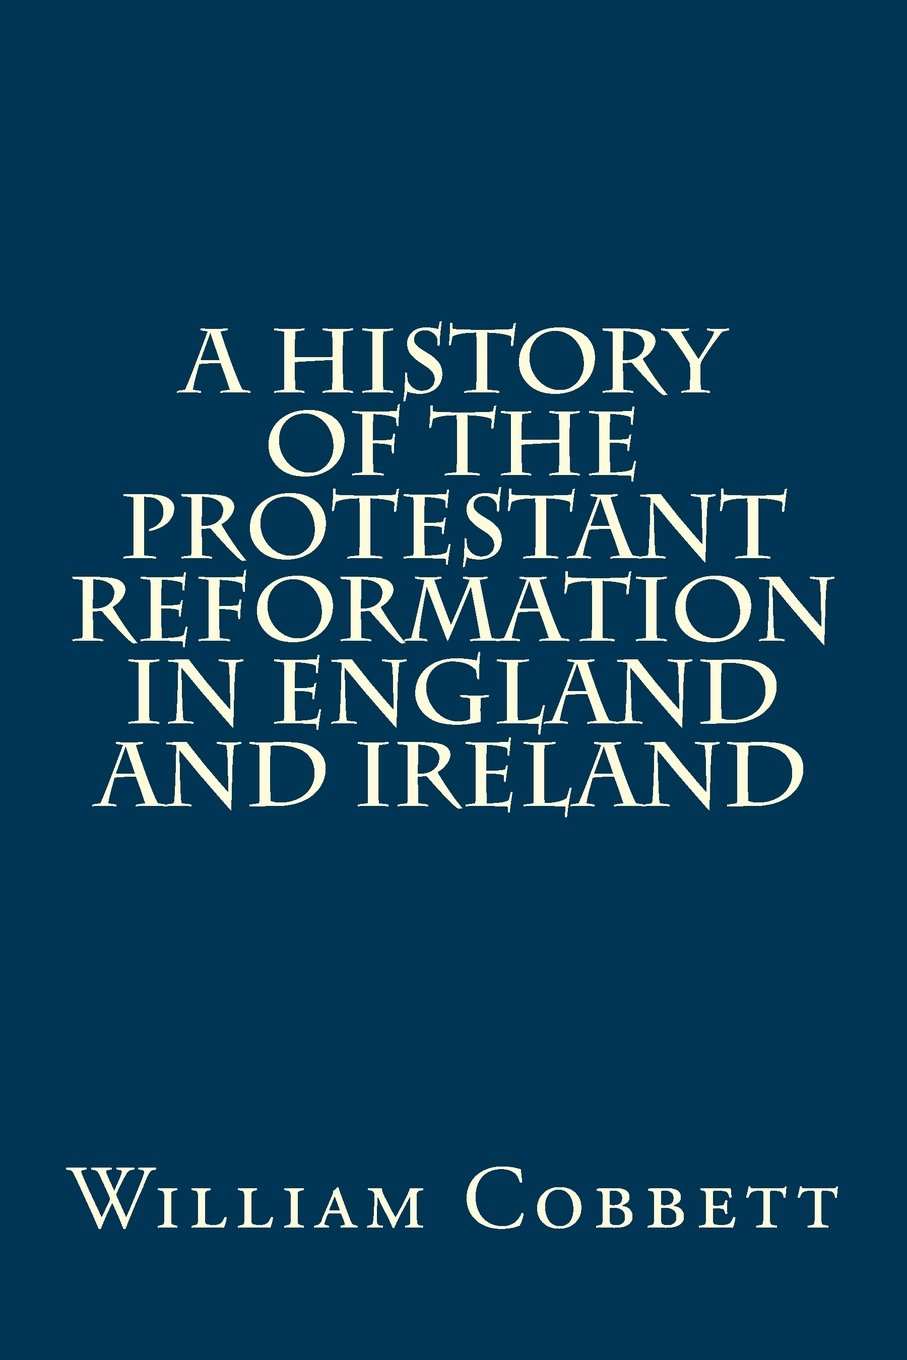 A History of the Protestant Reformation in England and Ireland